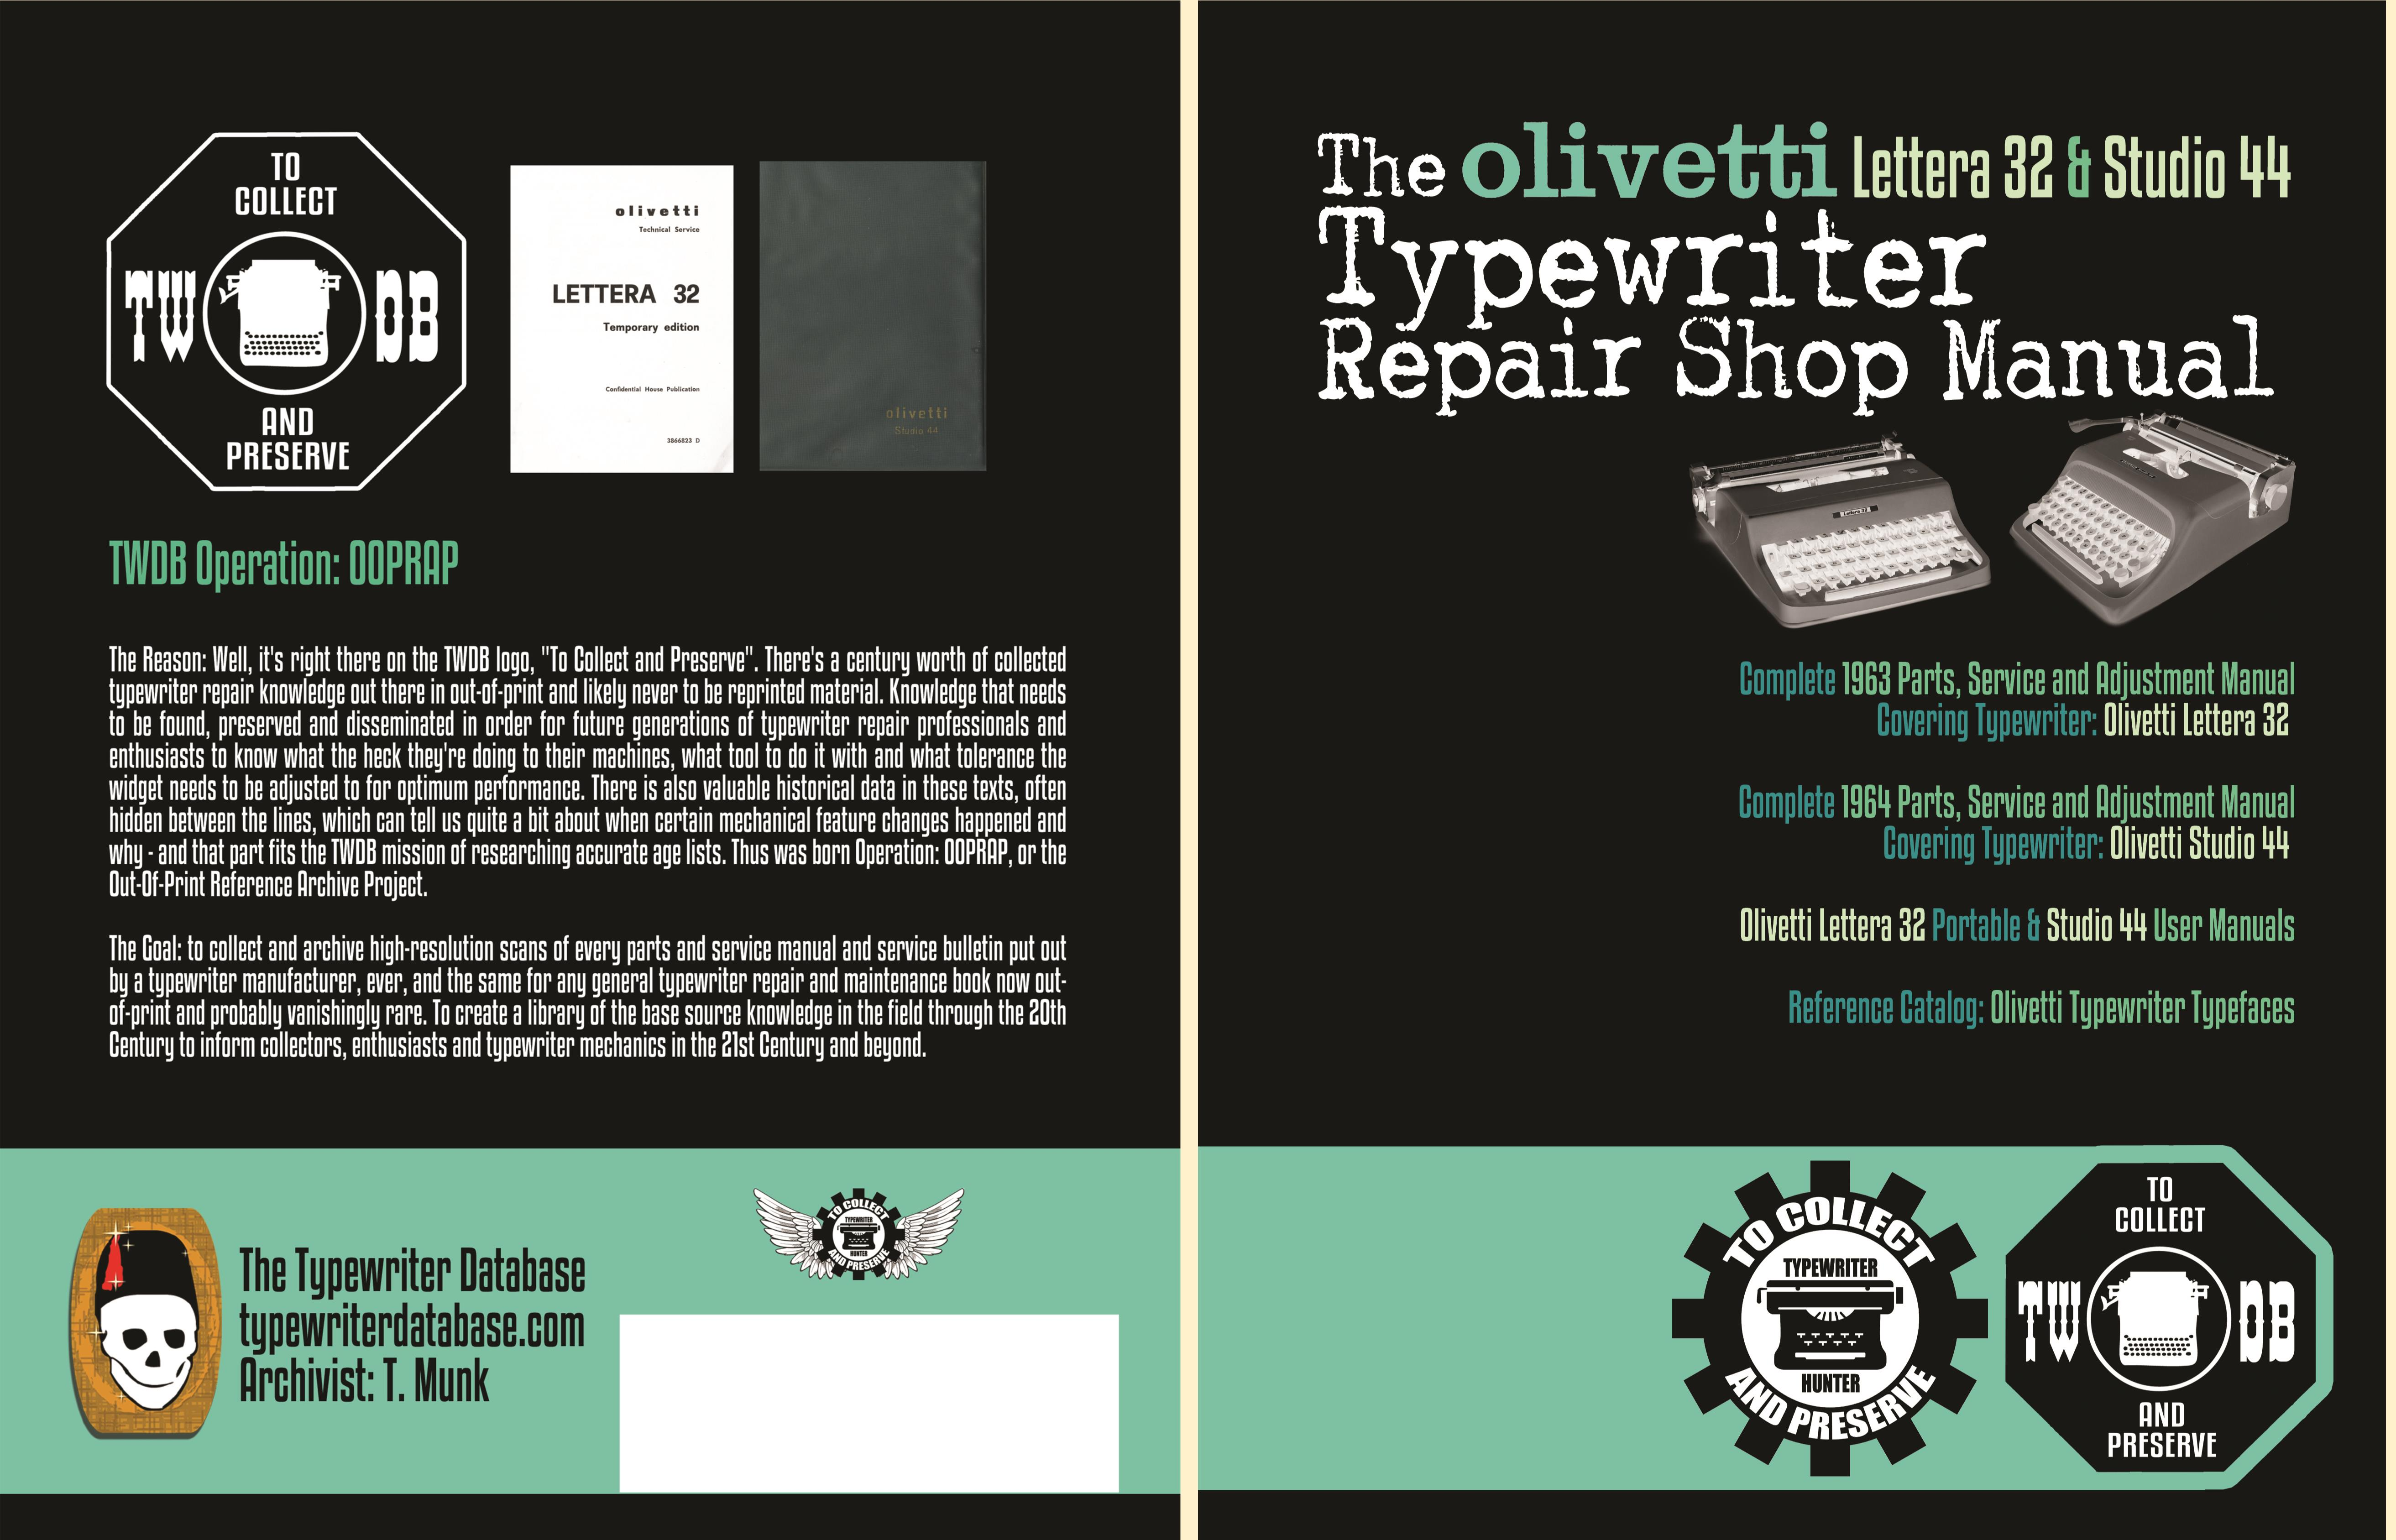 The Olivetti Lettera 32 & Studio 44 Typewriter Repair Shop Manual cover image